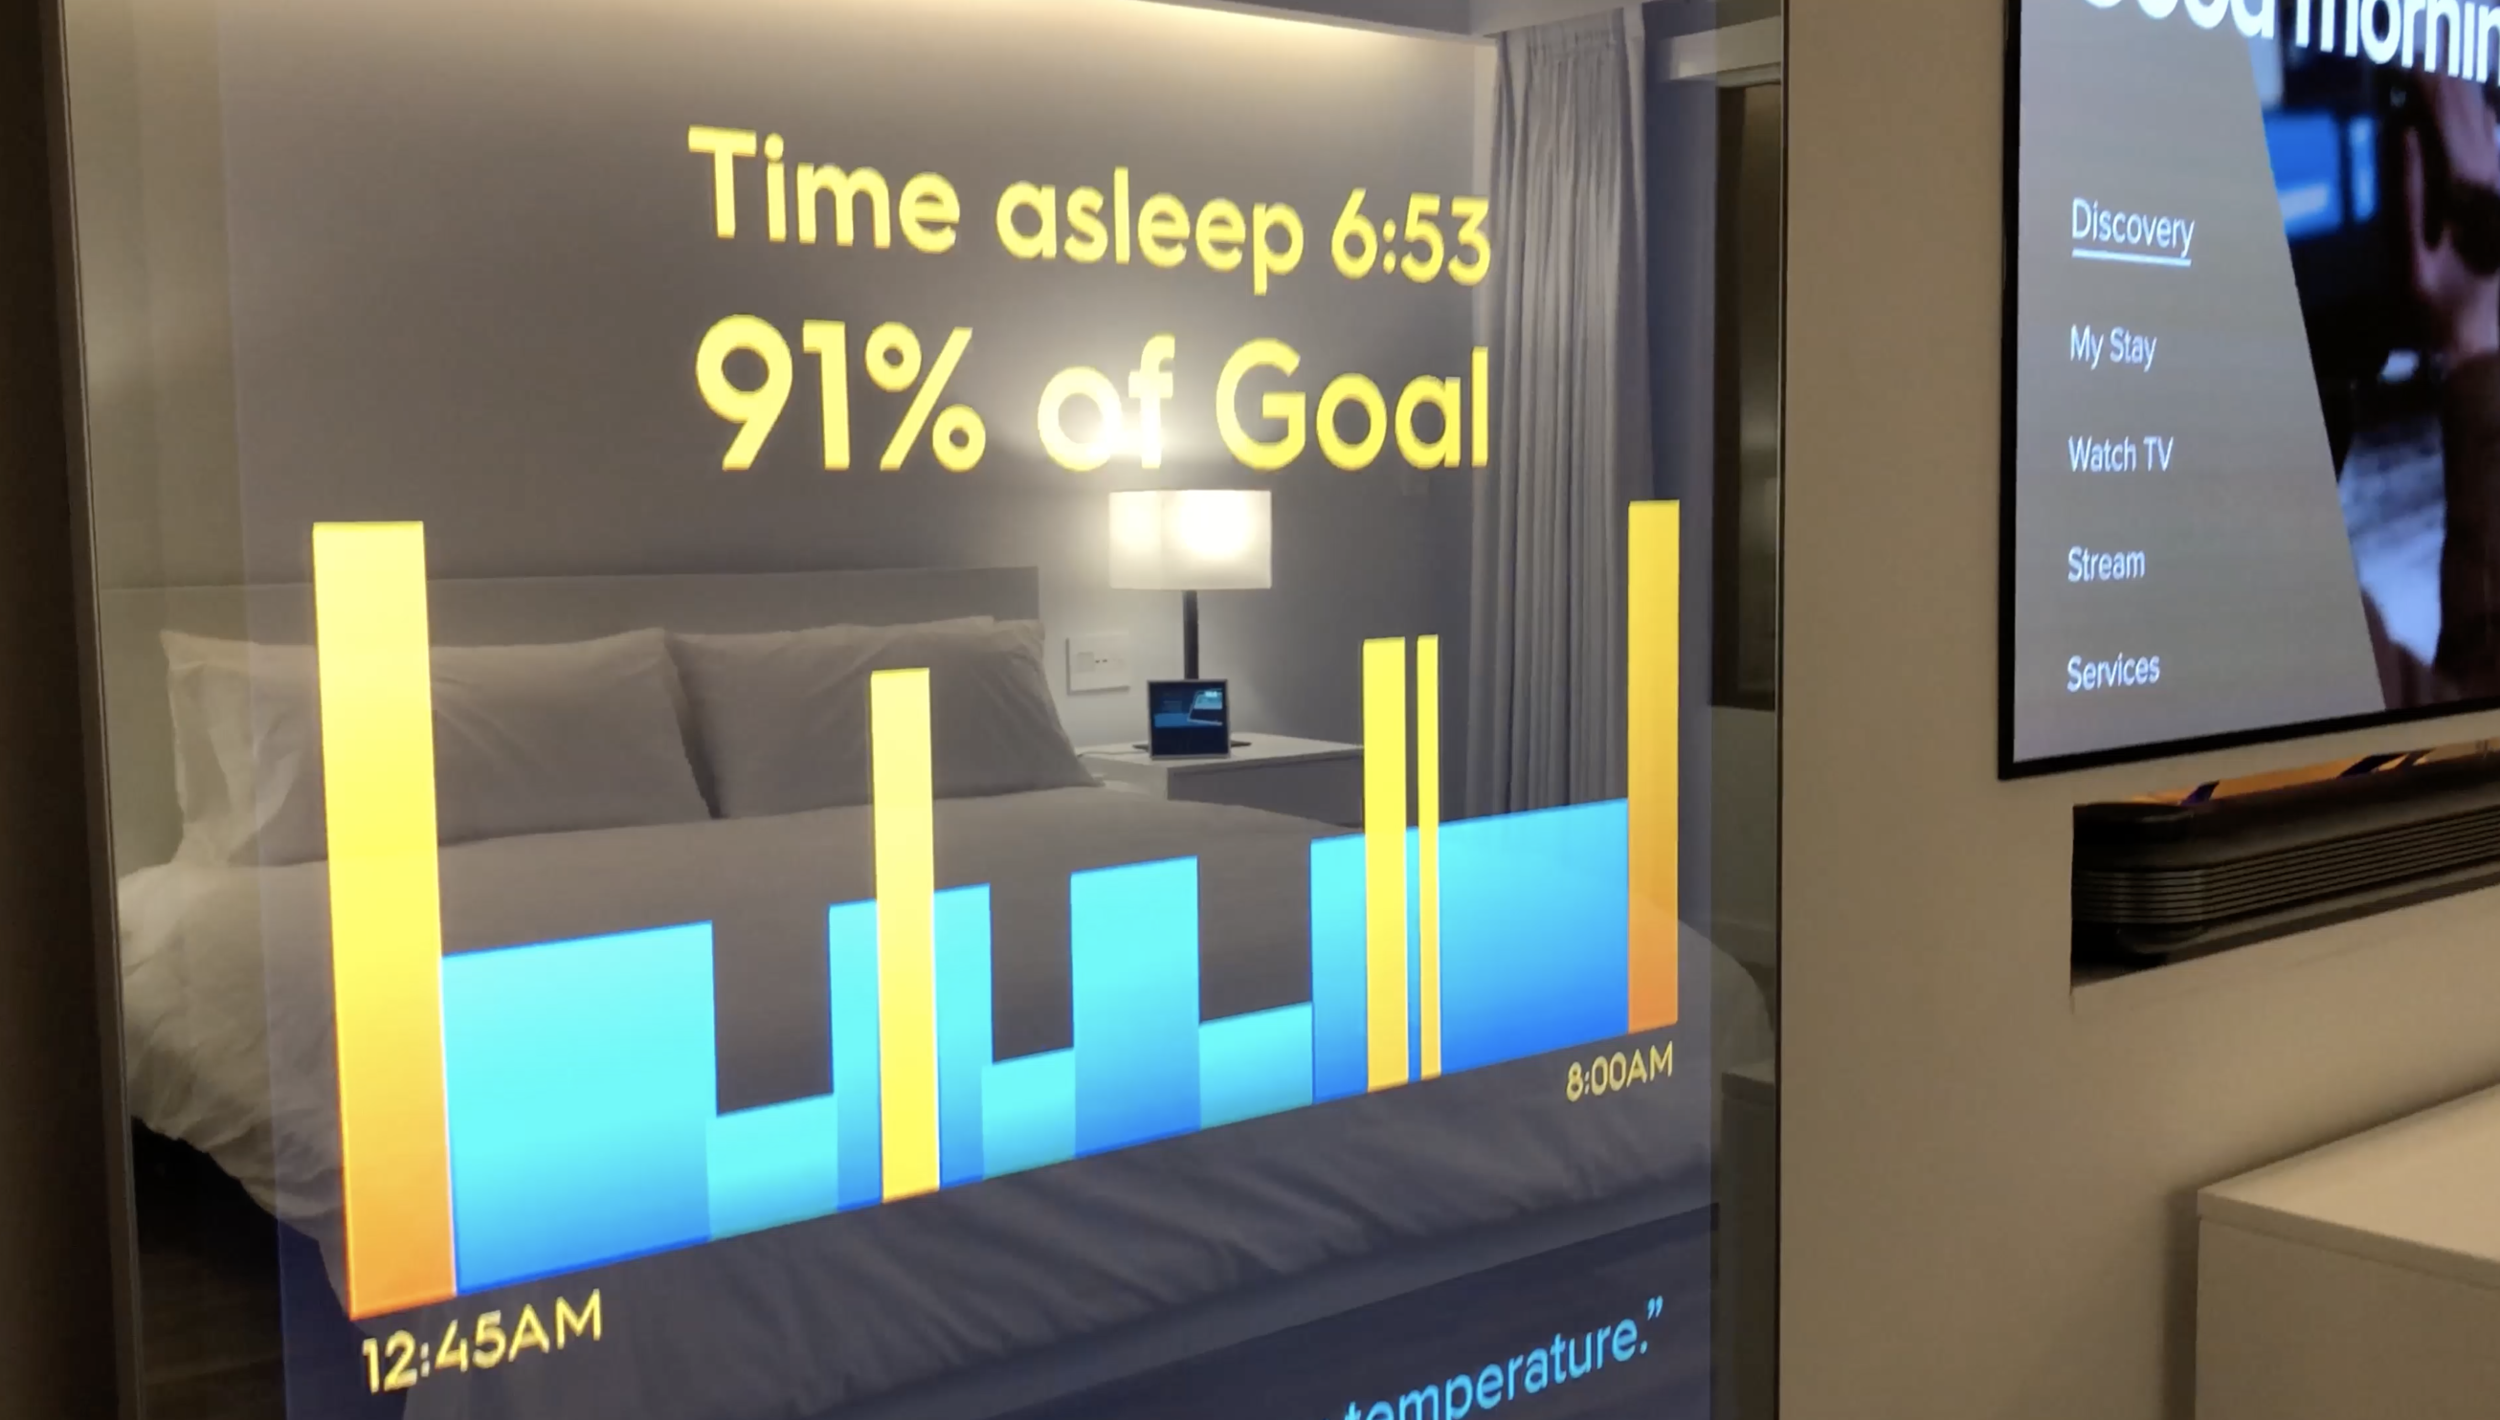 Sleep tracking connected to intelligent lighting for sleep promotion & jetlag prevention.